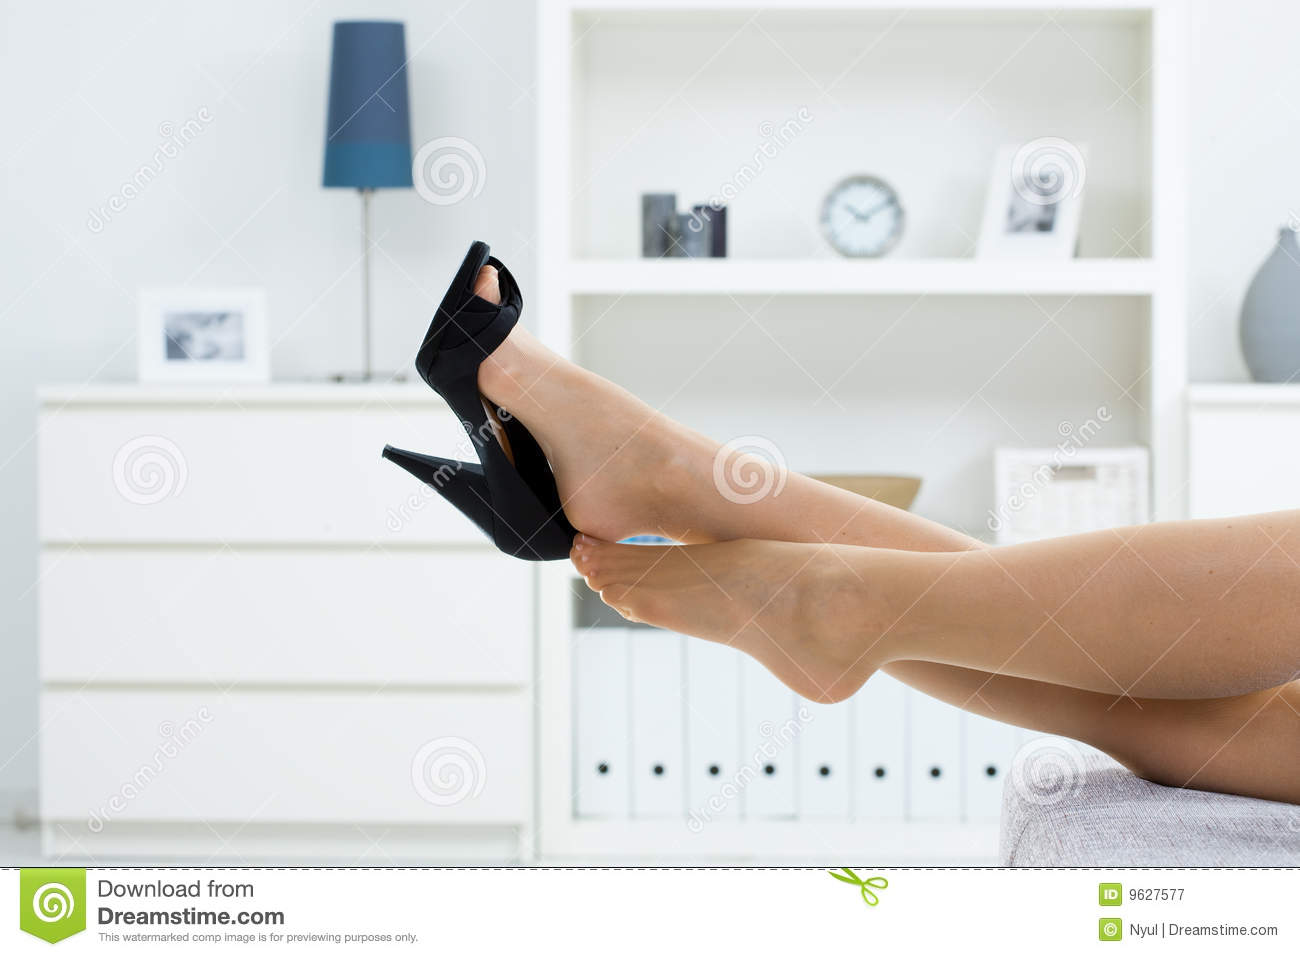 taking off shoes stock photo - image: 9730920